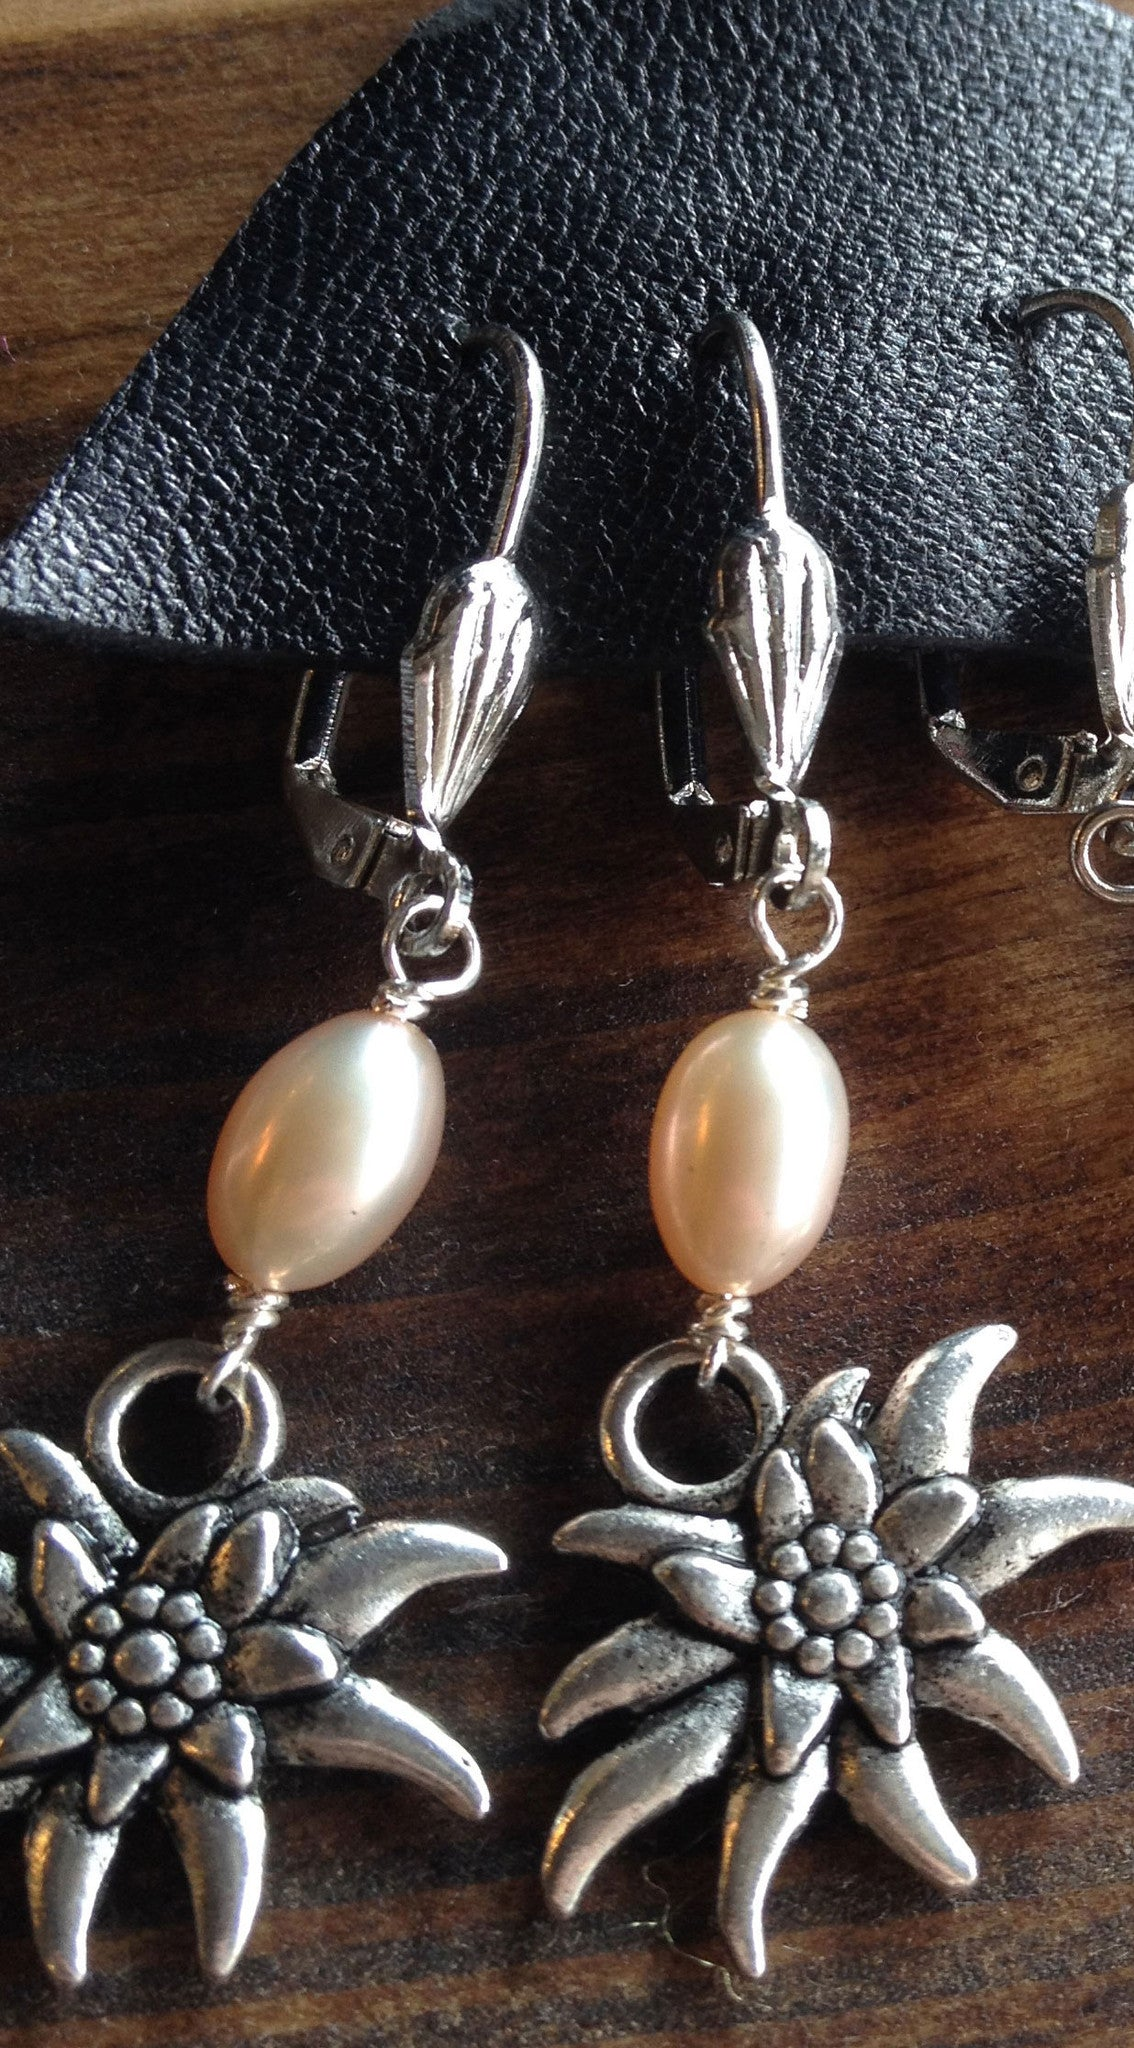 Edelweiss Earrings with Freshwater Pearls